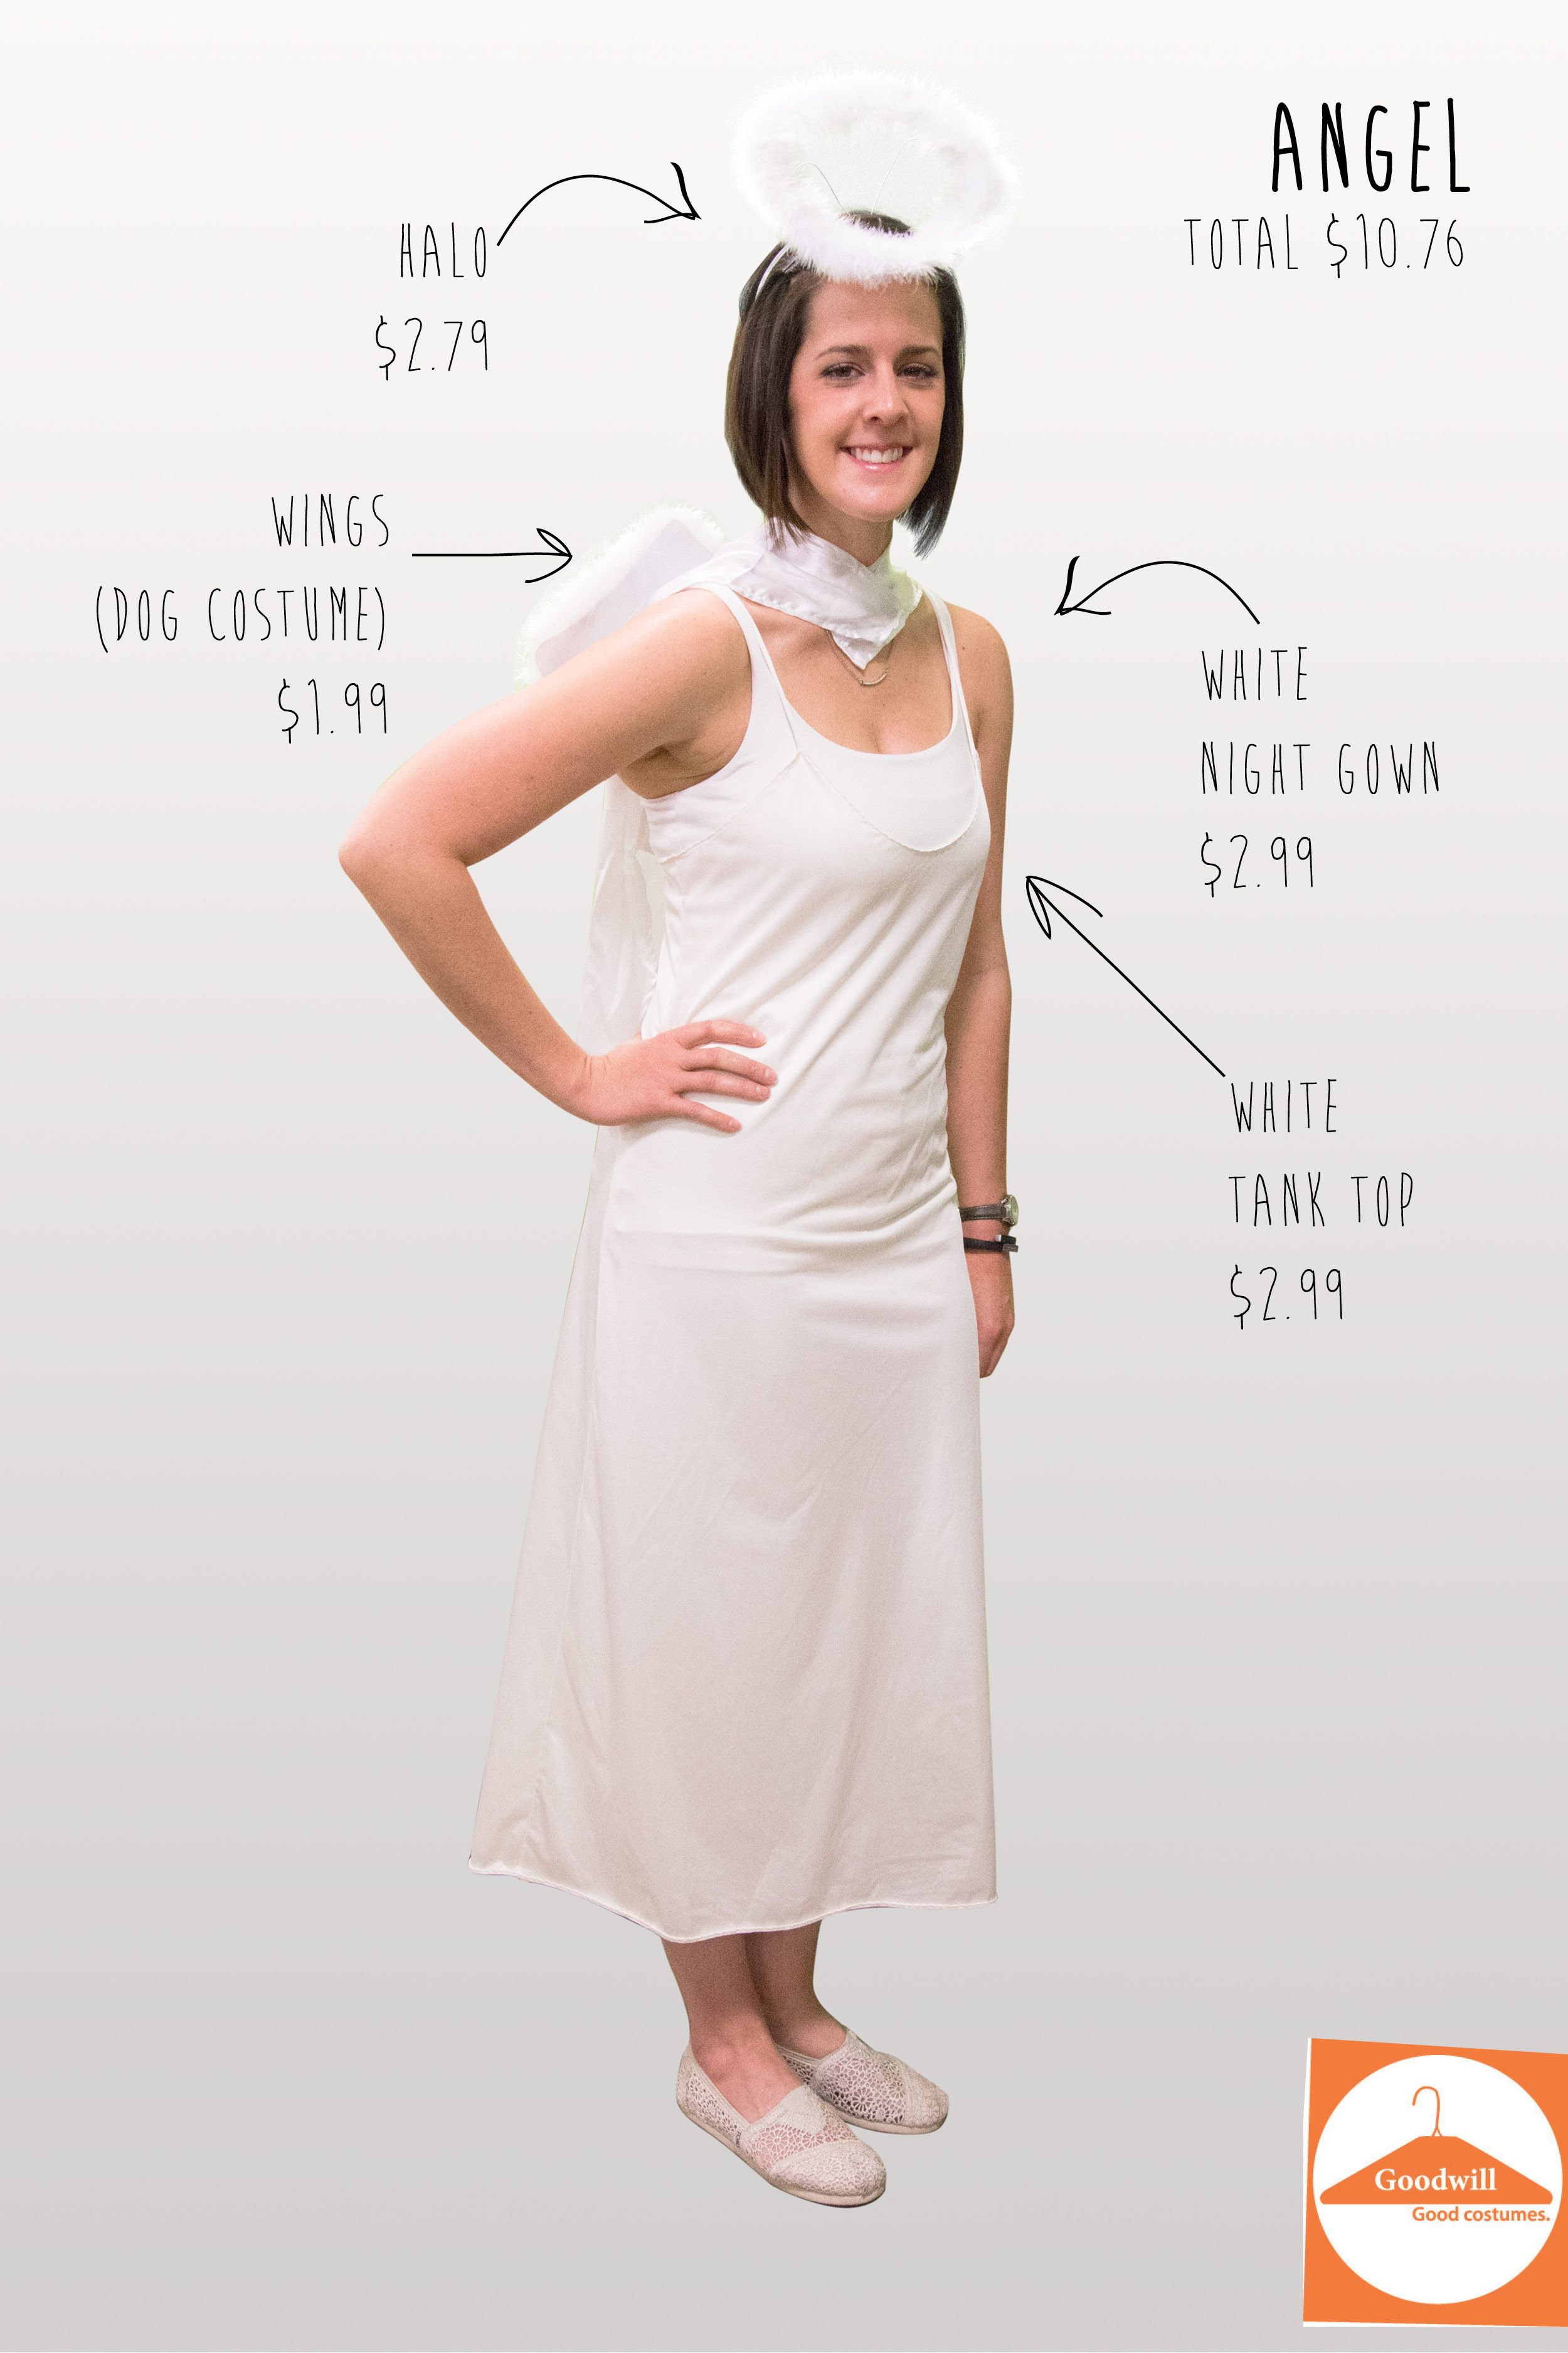 Diy Angel Costume Easy To Make This One Your Own From Goodwill